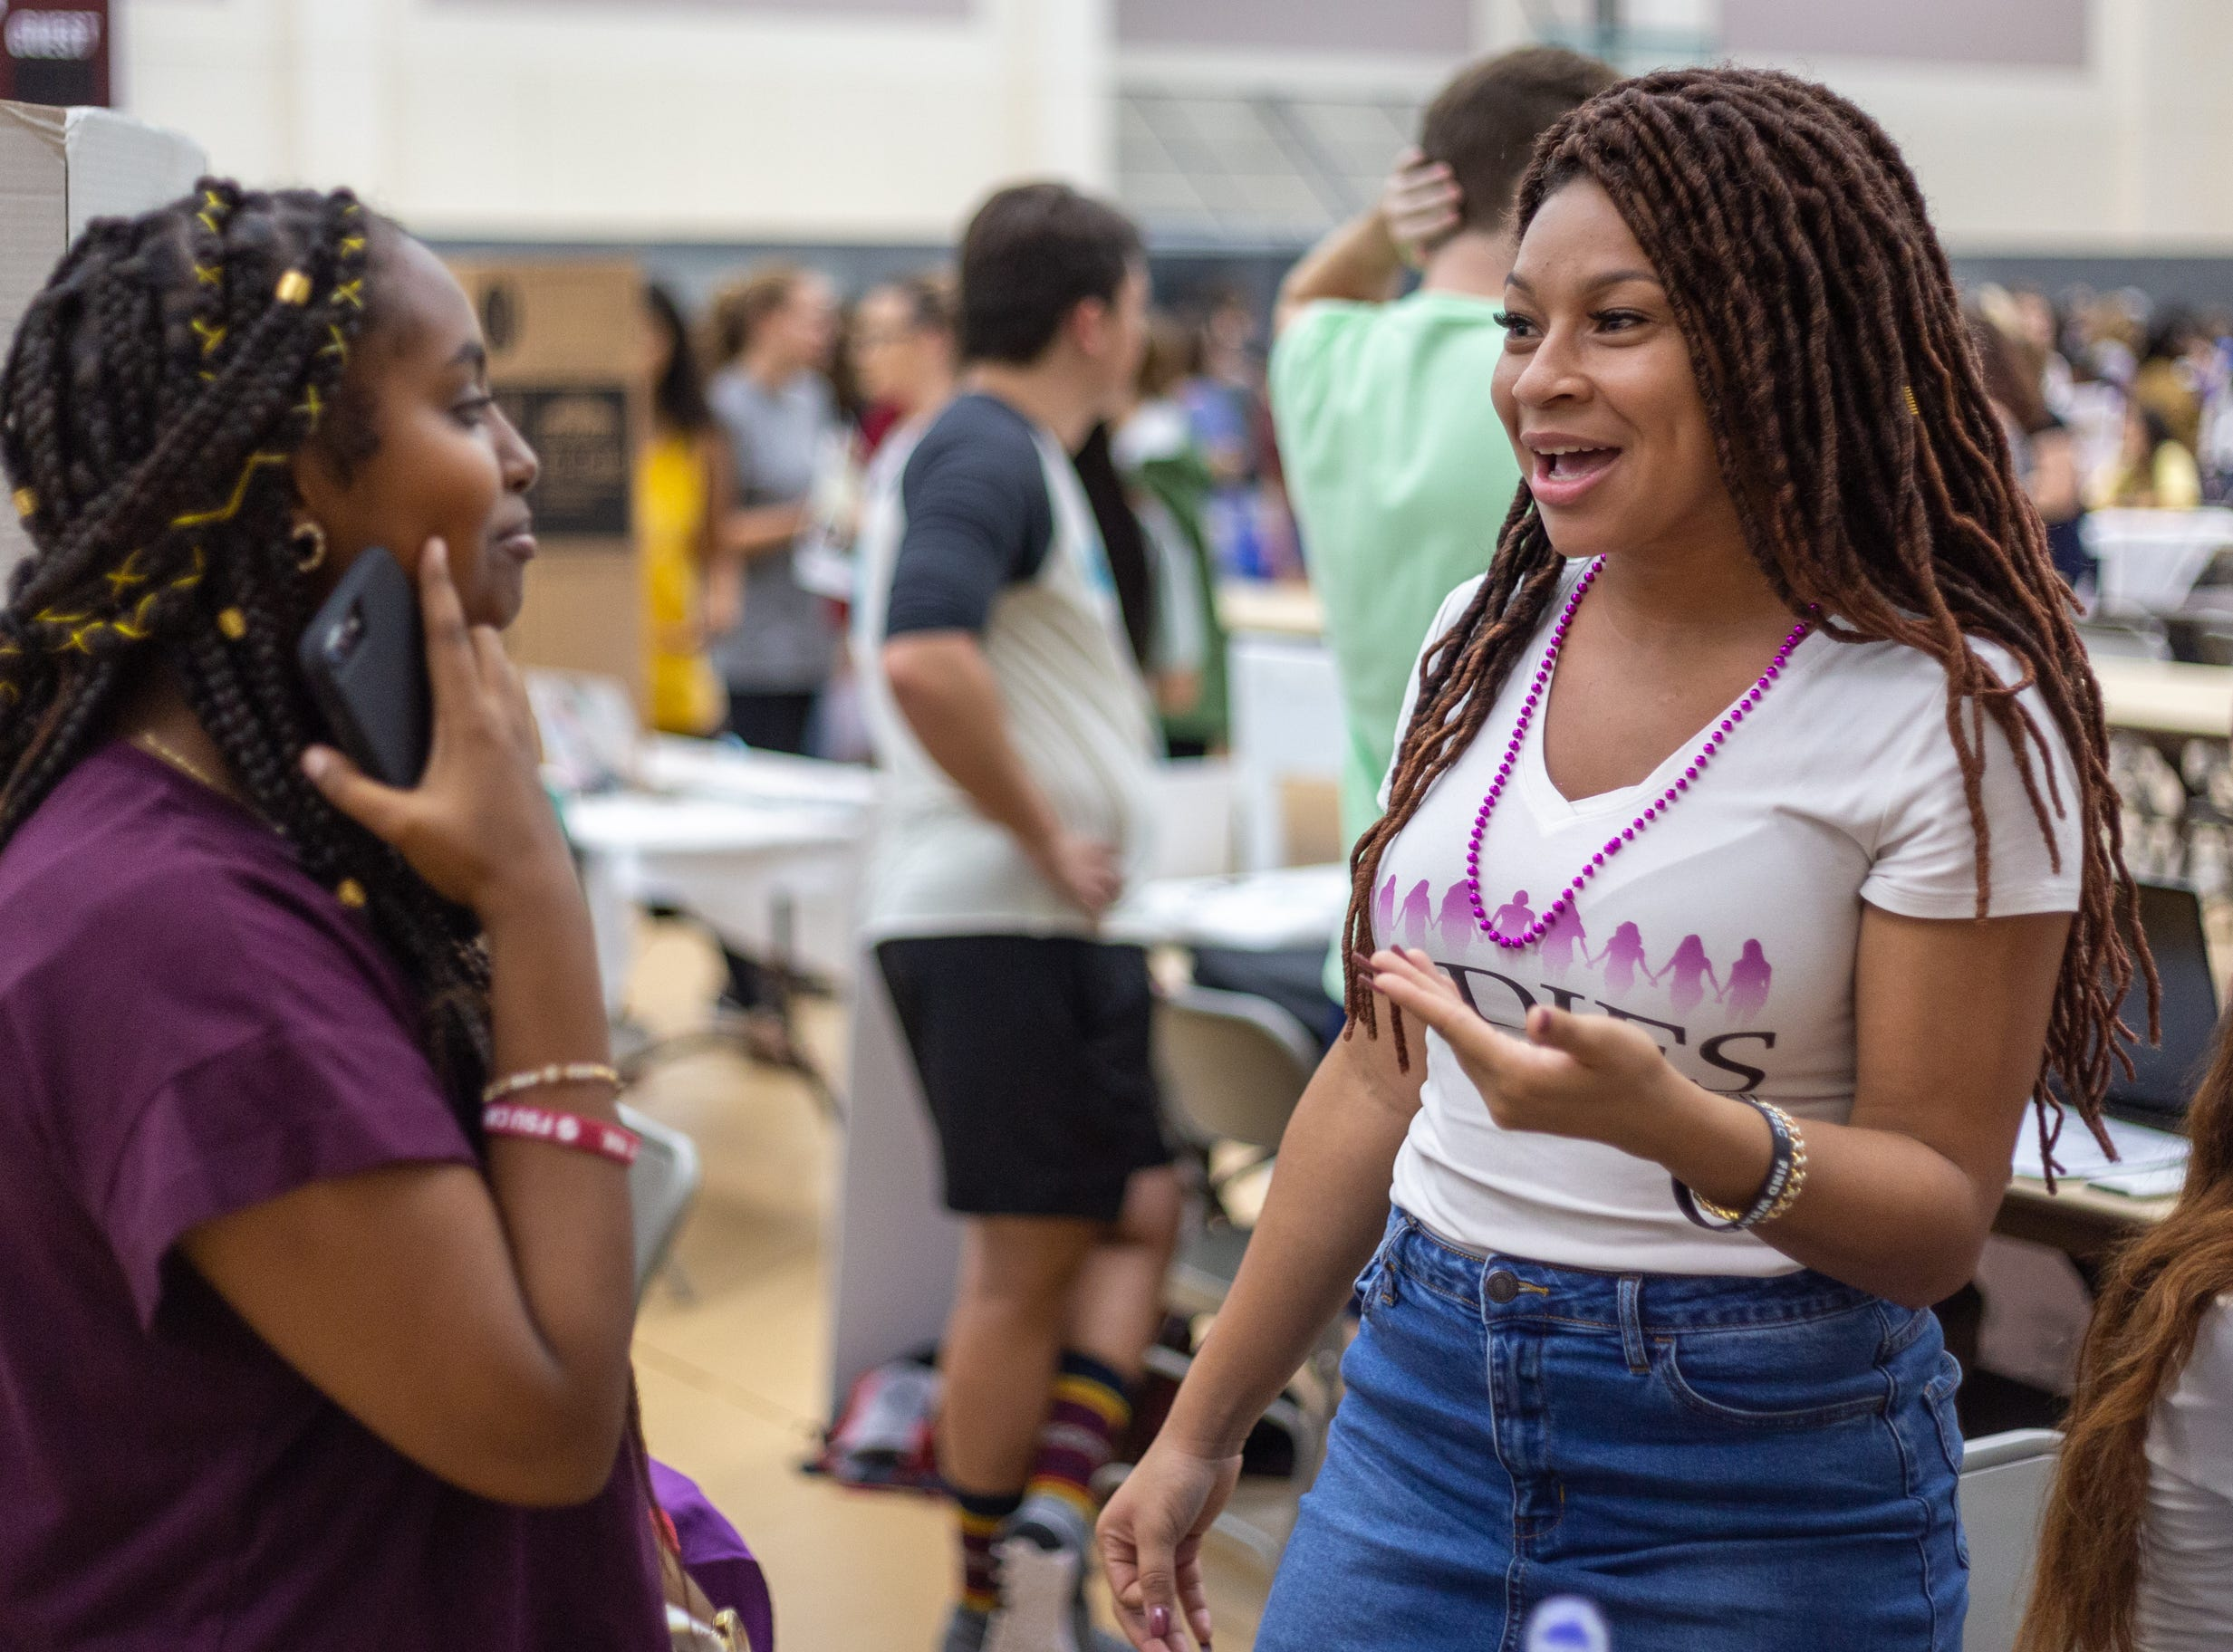 Wendyvette Edwards (right), president of LADIES speaks to a prospective club member on Tuesday, August 29th at FSU's Involvement Fair in the Tully Gymnasium, Tallahassee, FL.